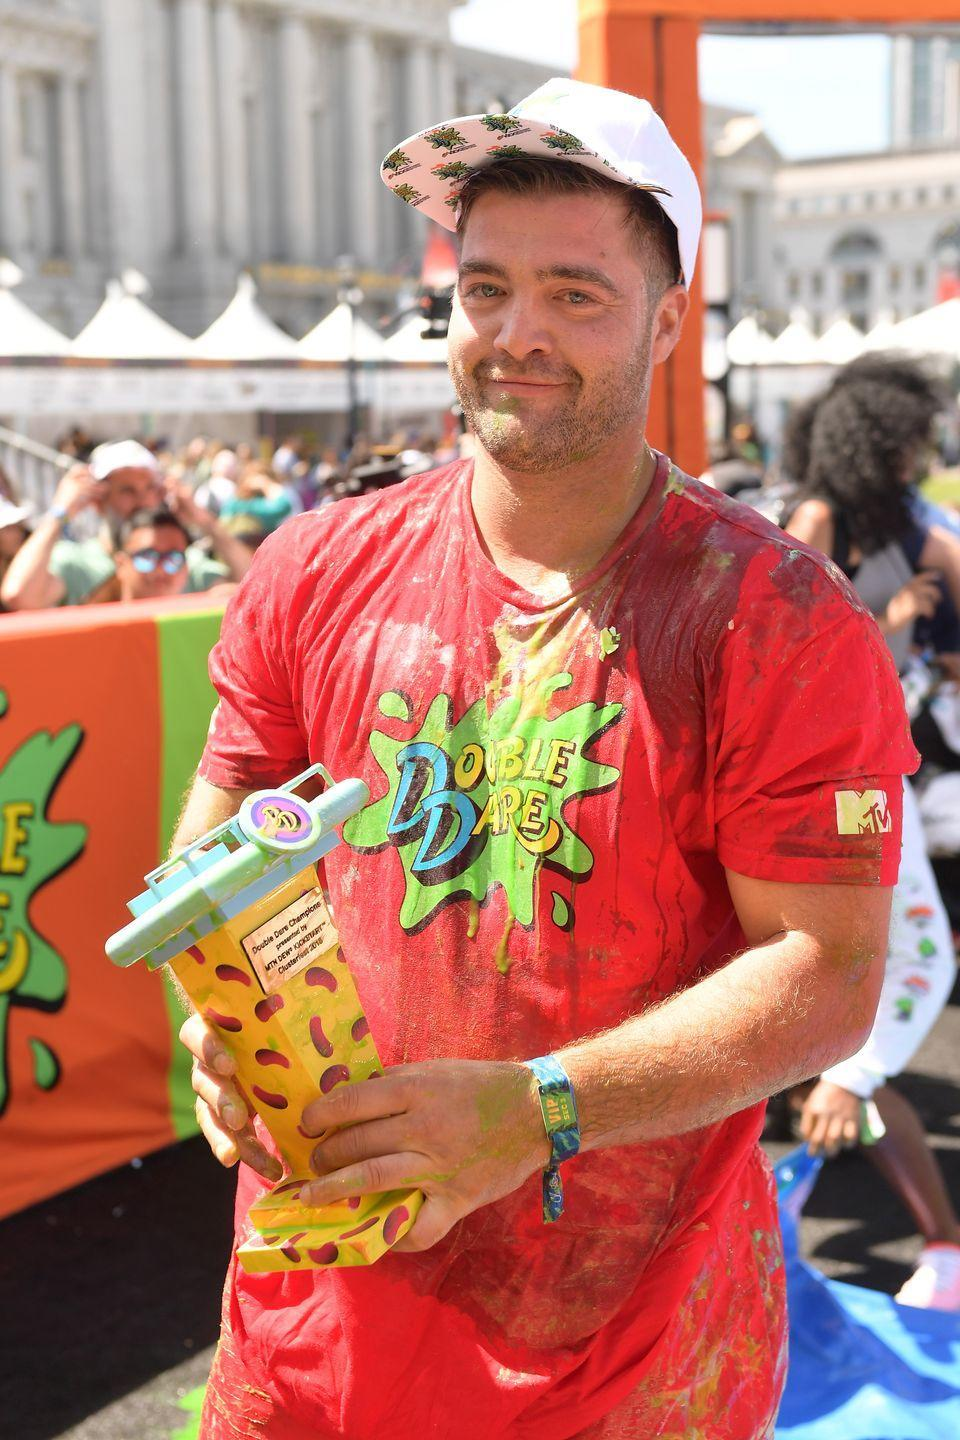 <p>Tamburello has remained in the MTV spotlight as a regular competitor on <em>The Challenge. </em>Since 2004, he has regularly appeared on the show, including the most recent season, as well as its spin-off, <em><em>The Challenge:</em> Champs vs. Stars</em>. In 2018, he married Lilianet Solares<em>. </em></p>